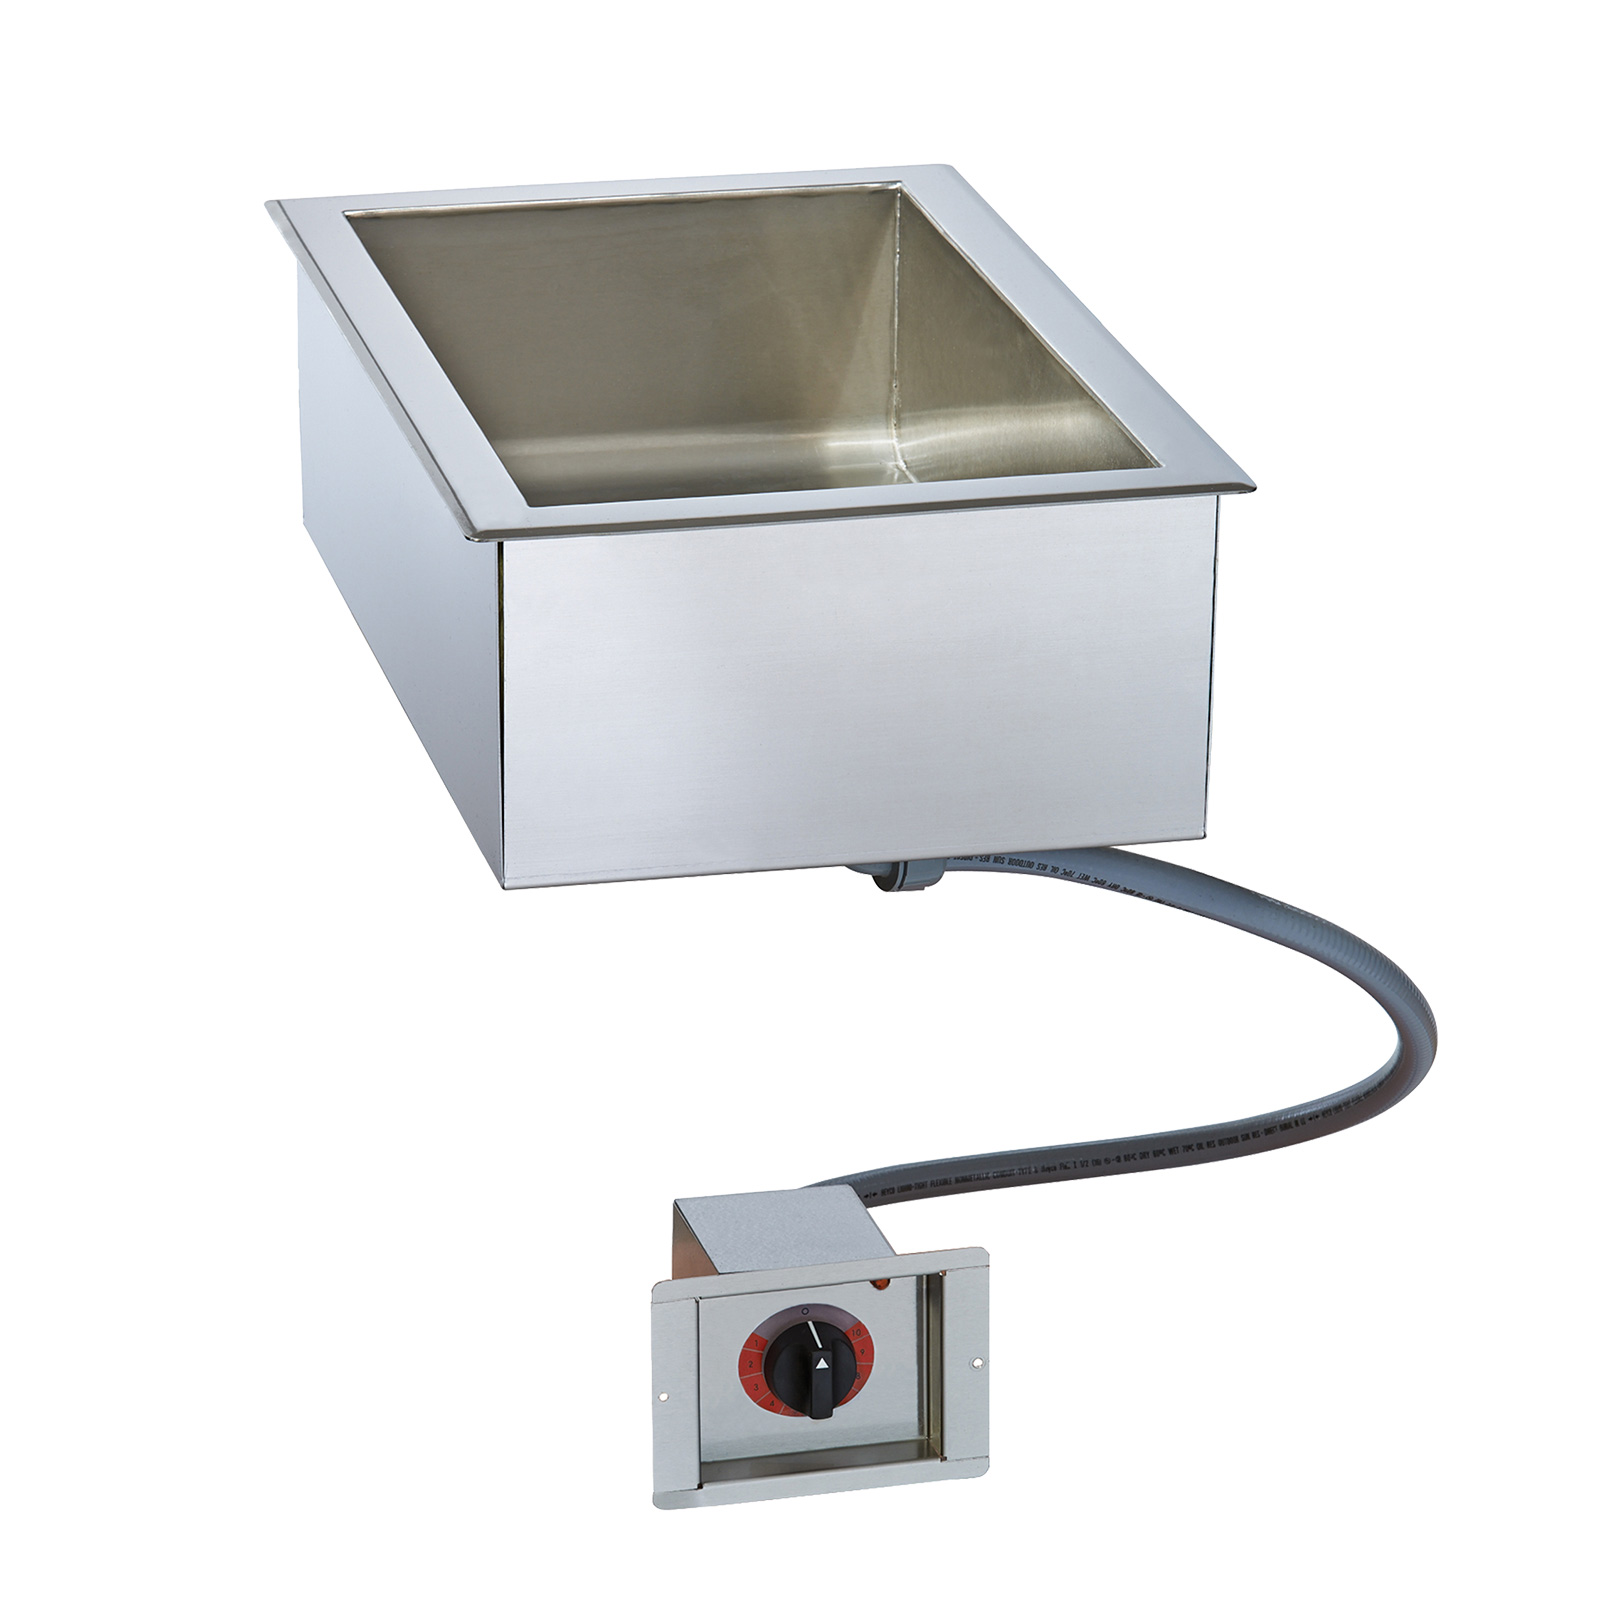 Alto-Shaam 100-HW/D6 Hot Food Well Unit, Drop-In, Electric